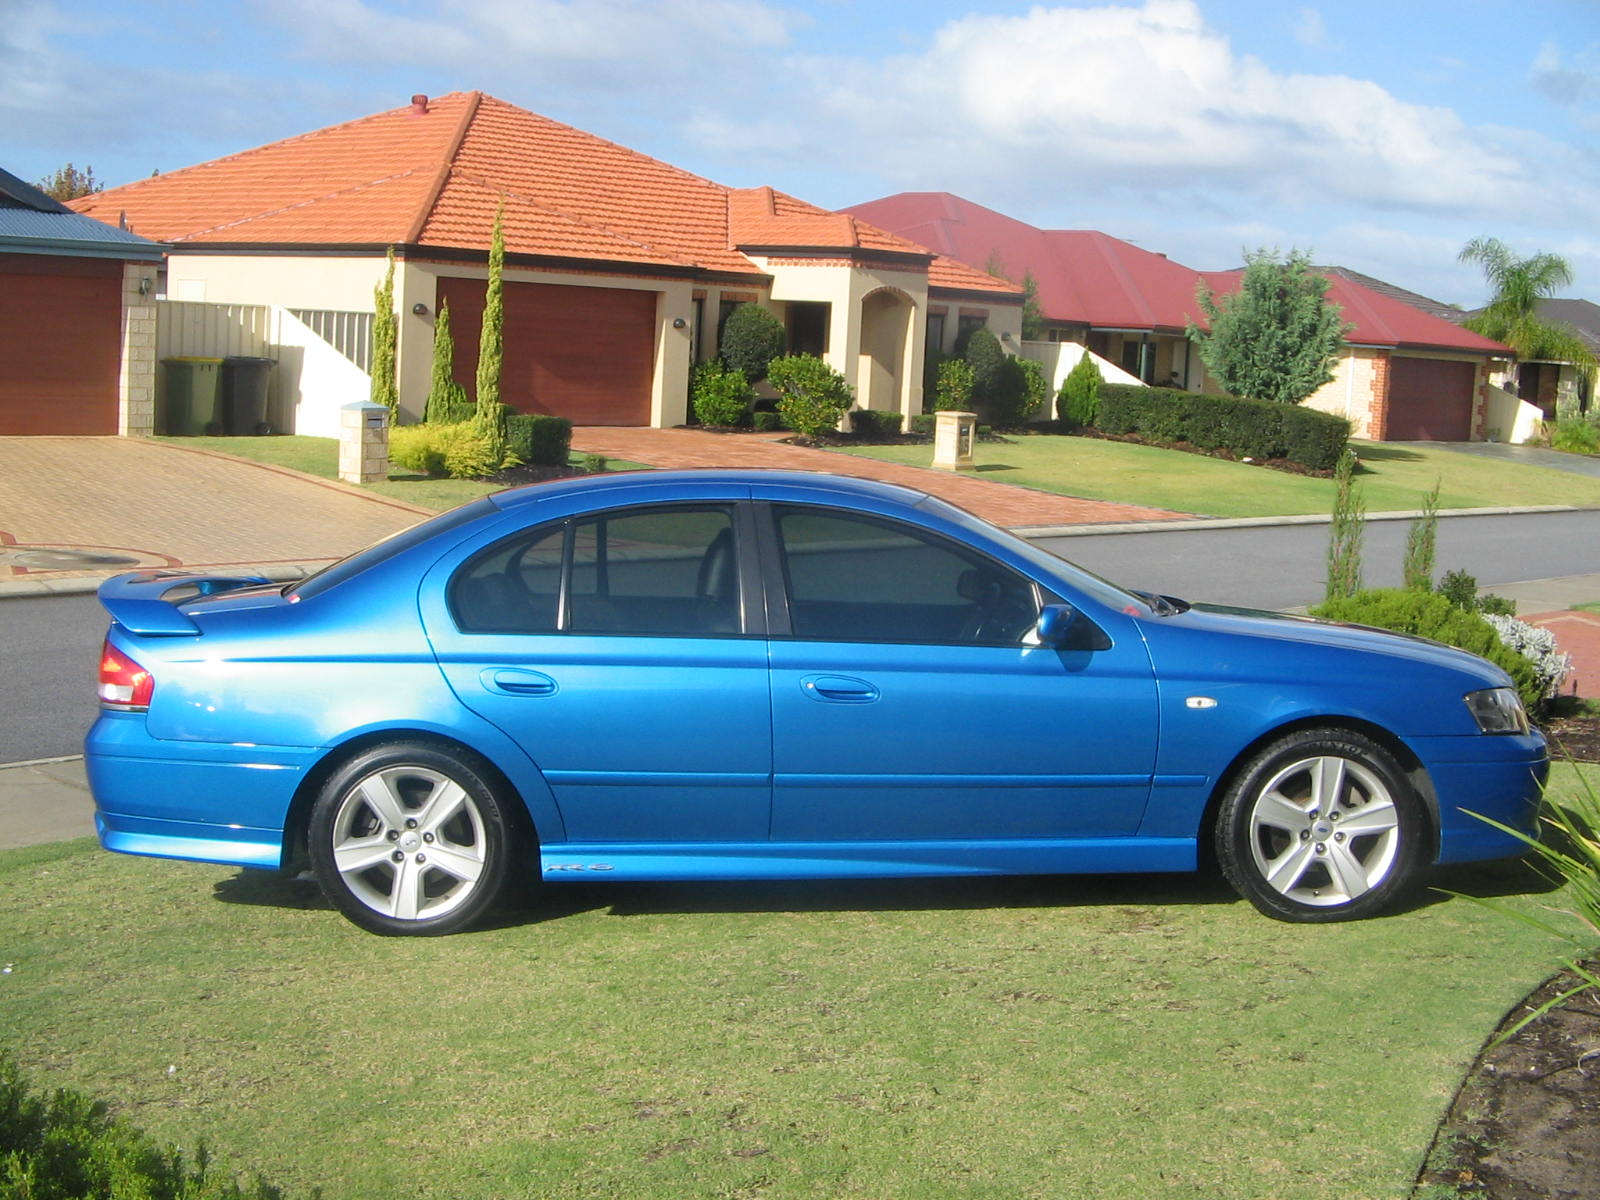 2003 Ford Falcon Xr6 Turbo 1 4 Mile Trap Speeds 0 60 Dragtimes Com